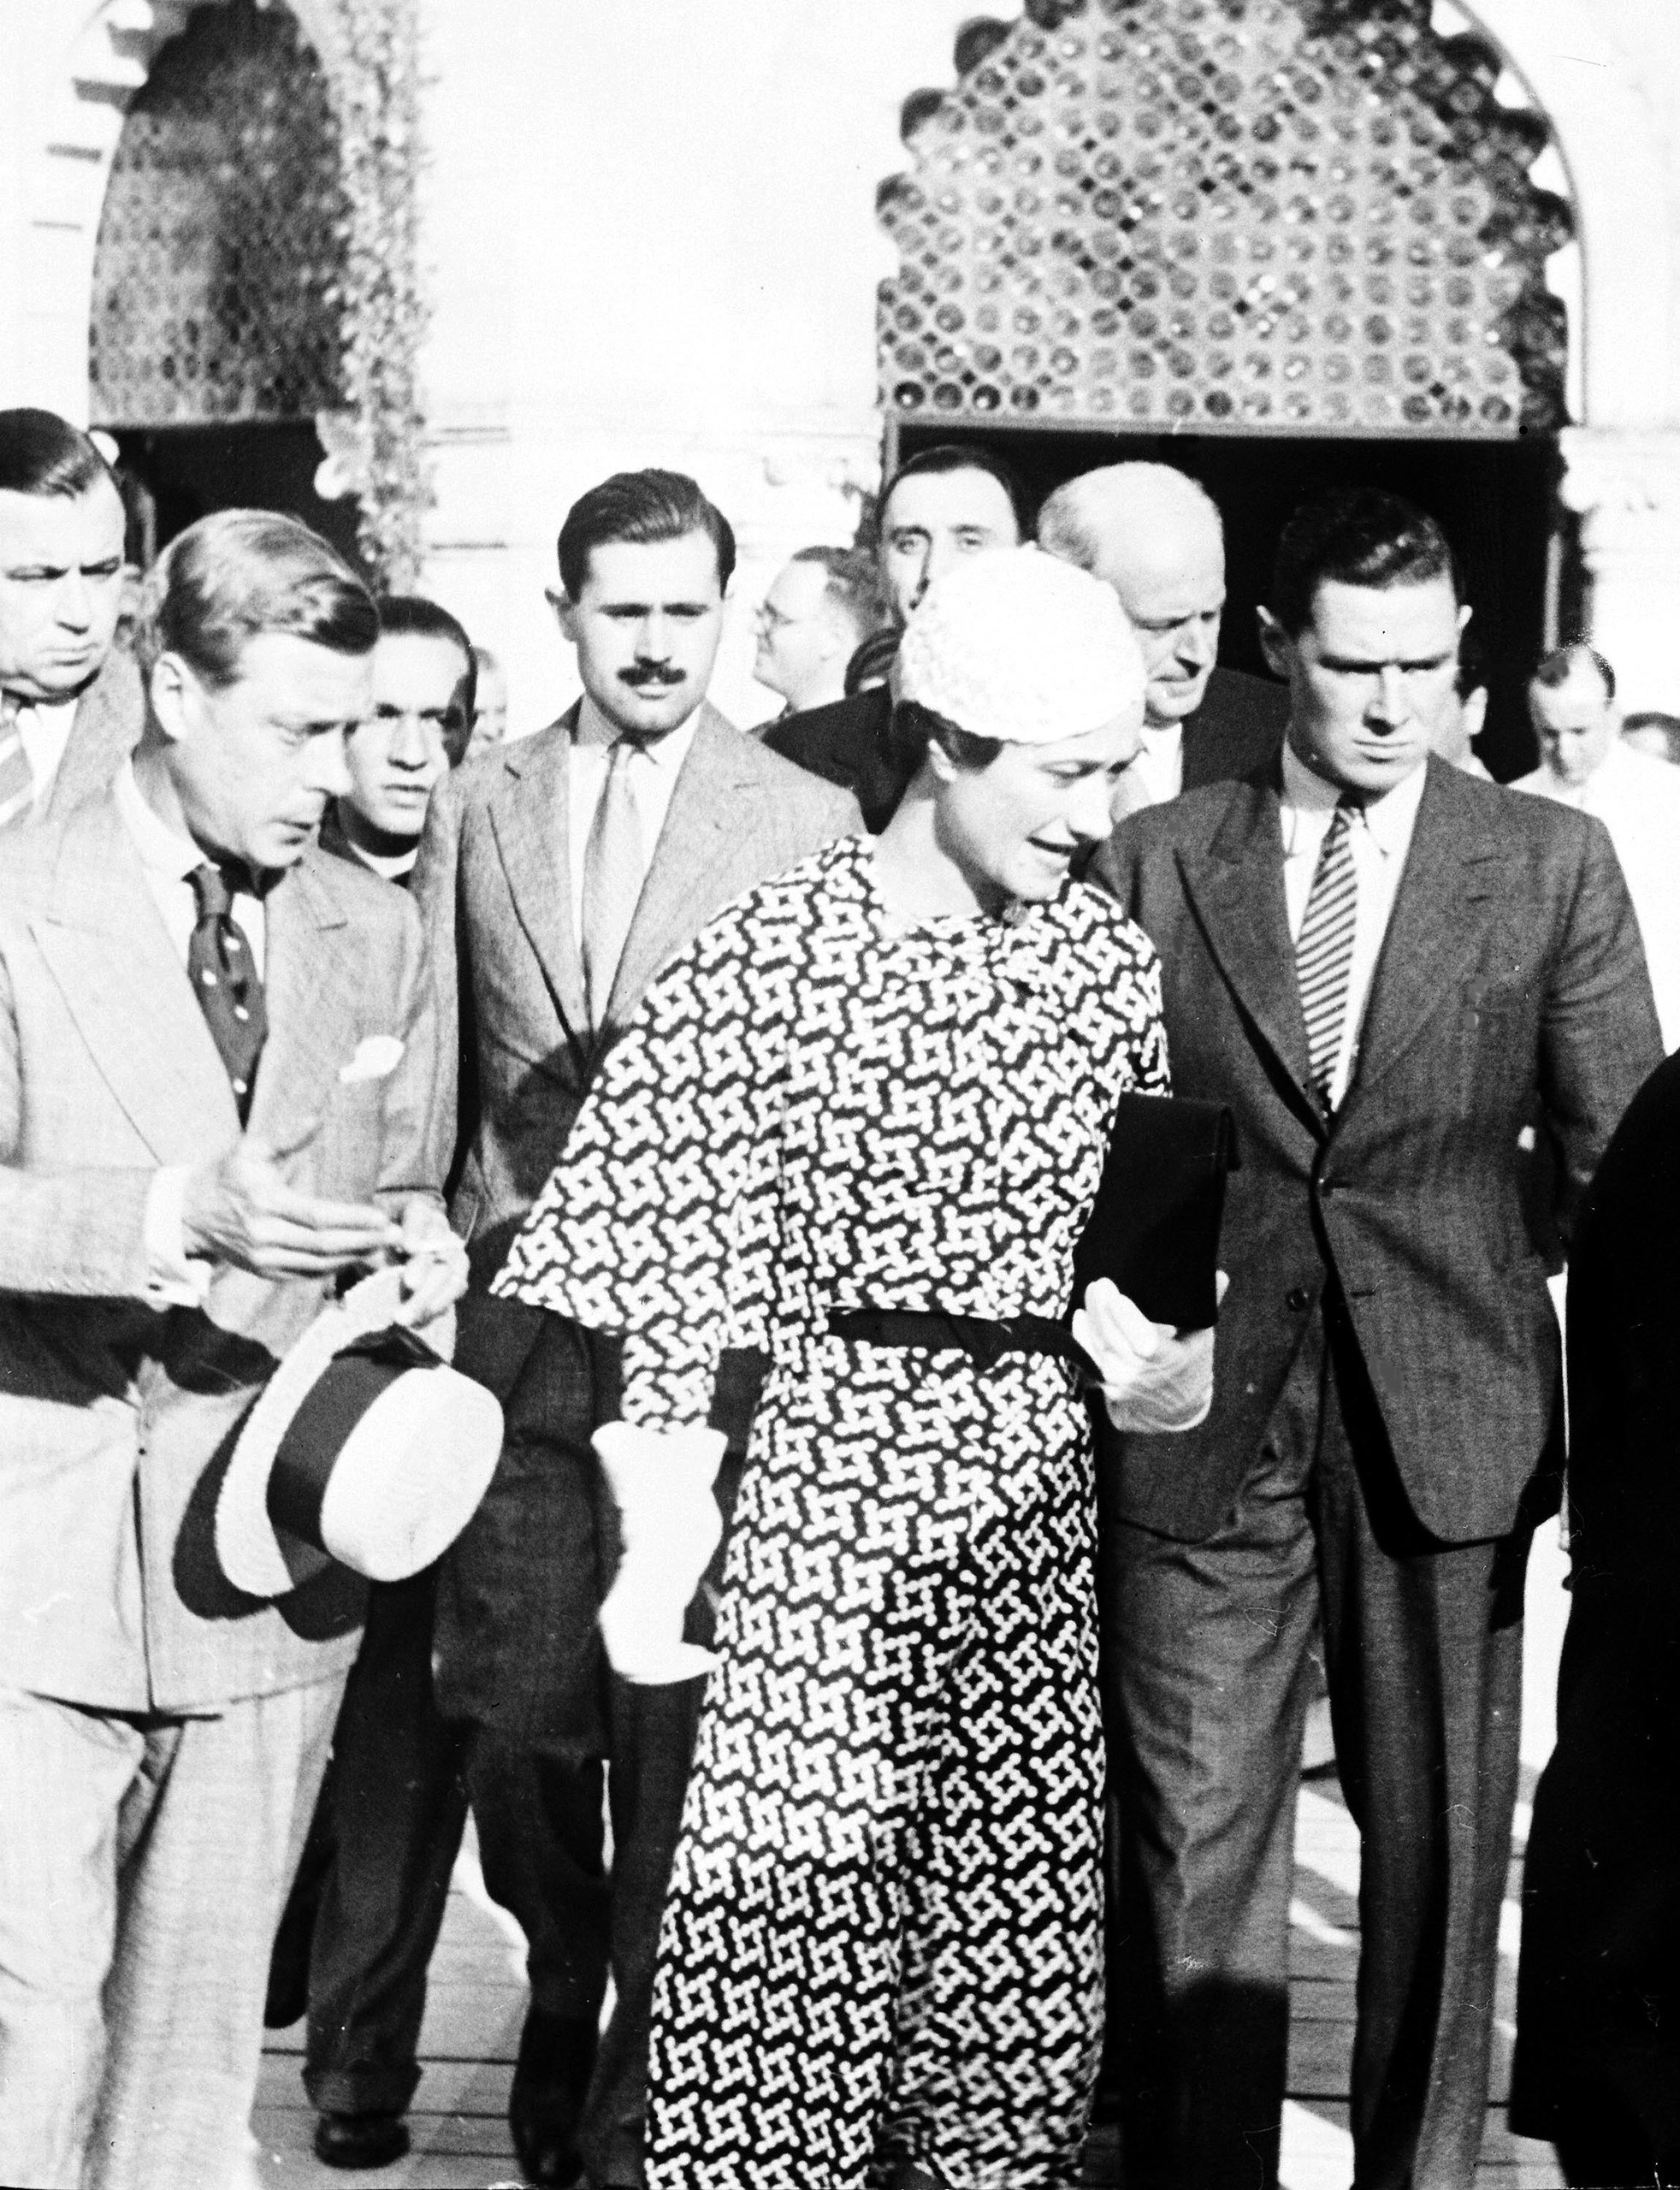 The Duke and Duchess of Windsor leave a hotel  in Venice, Italy, June 4, 1937, where they took tea before leaving for their honeymoon in Austria.